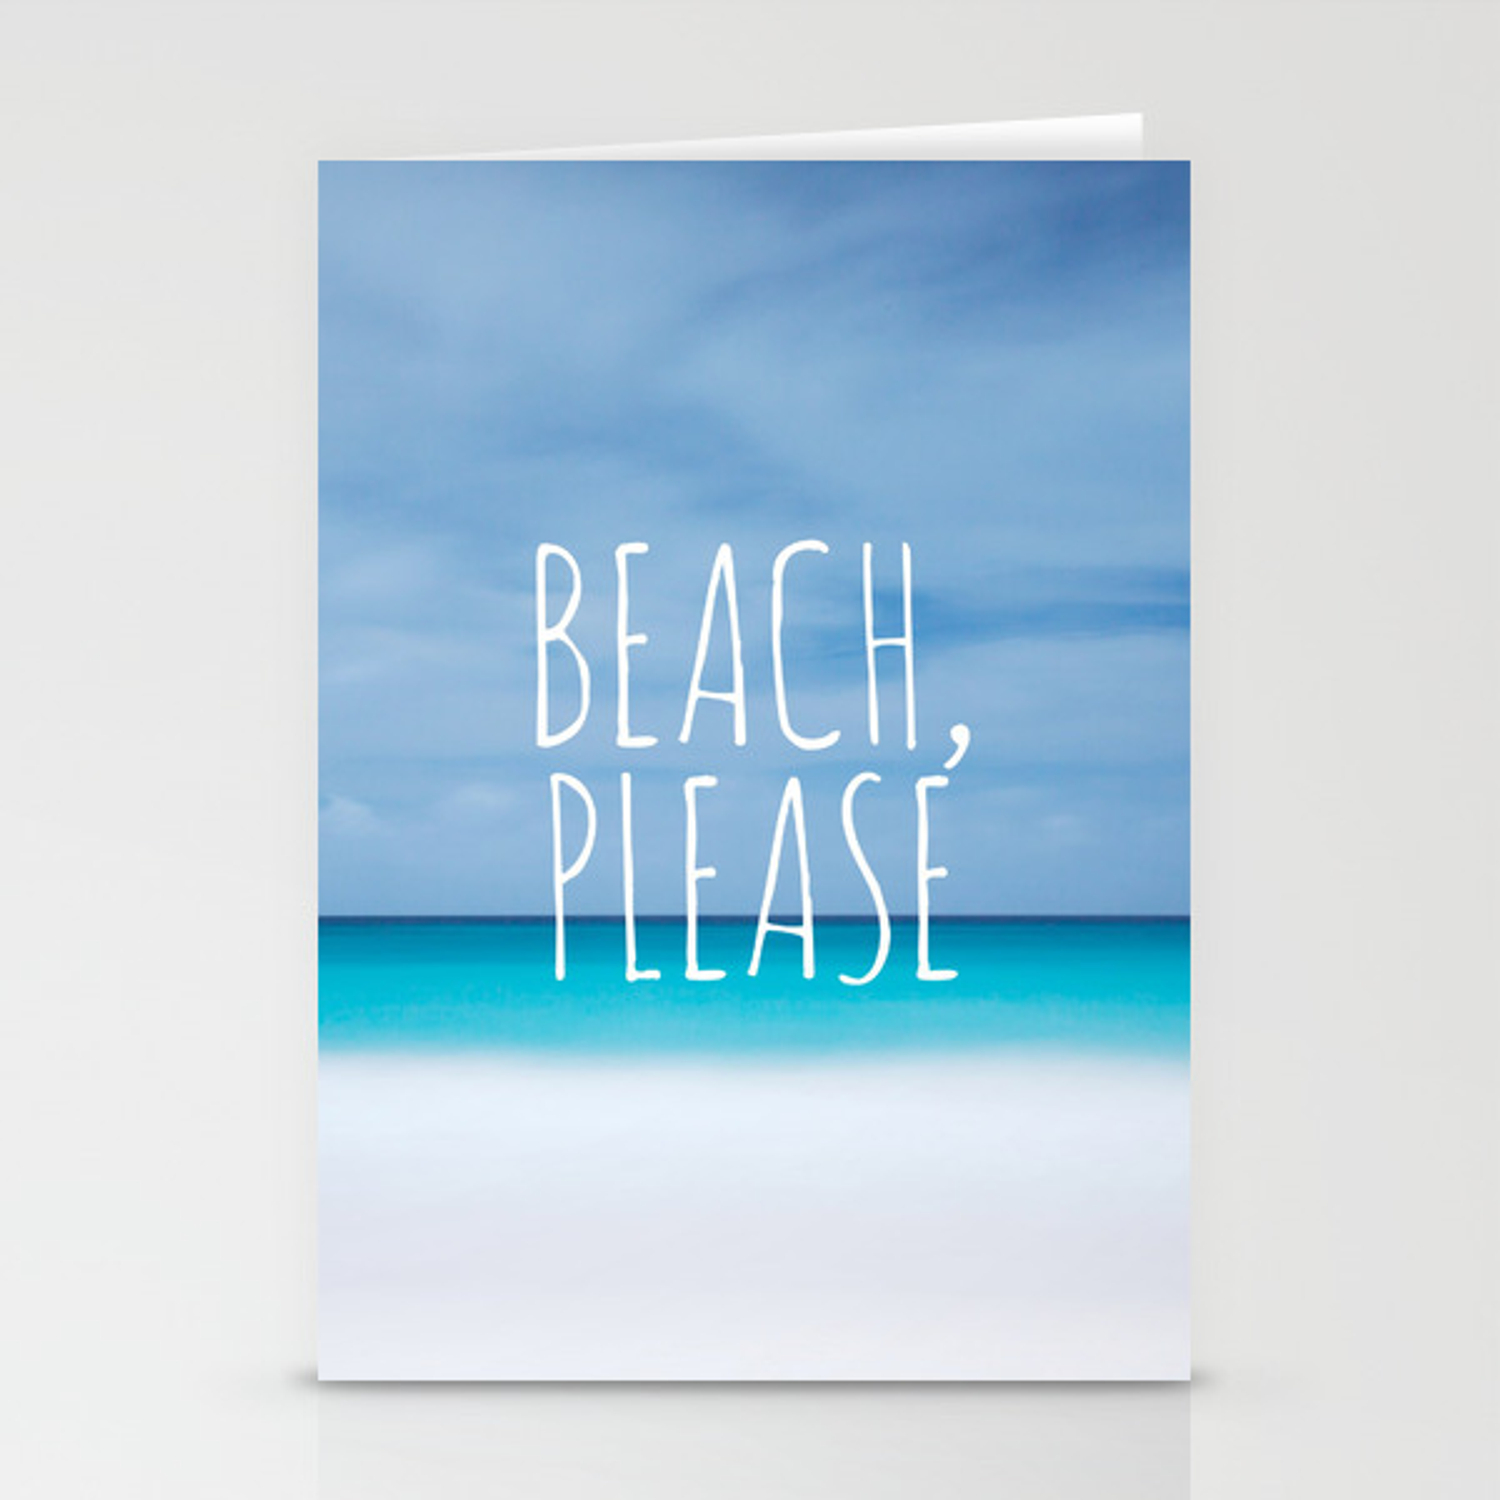 Beach Please Funny Ocean Coast Photo Hipster Travel Wanderlust Quotation Saying Photograph Stationery Cards By Igalaxy Society6